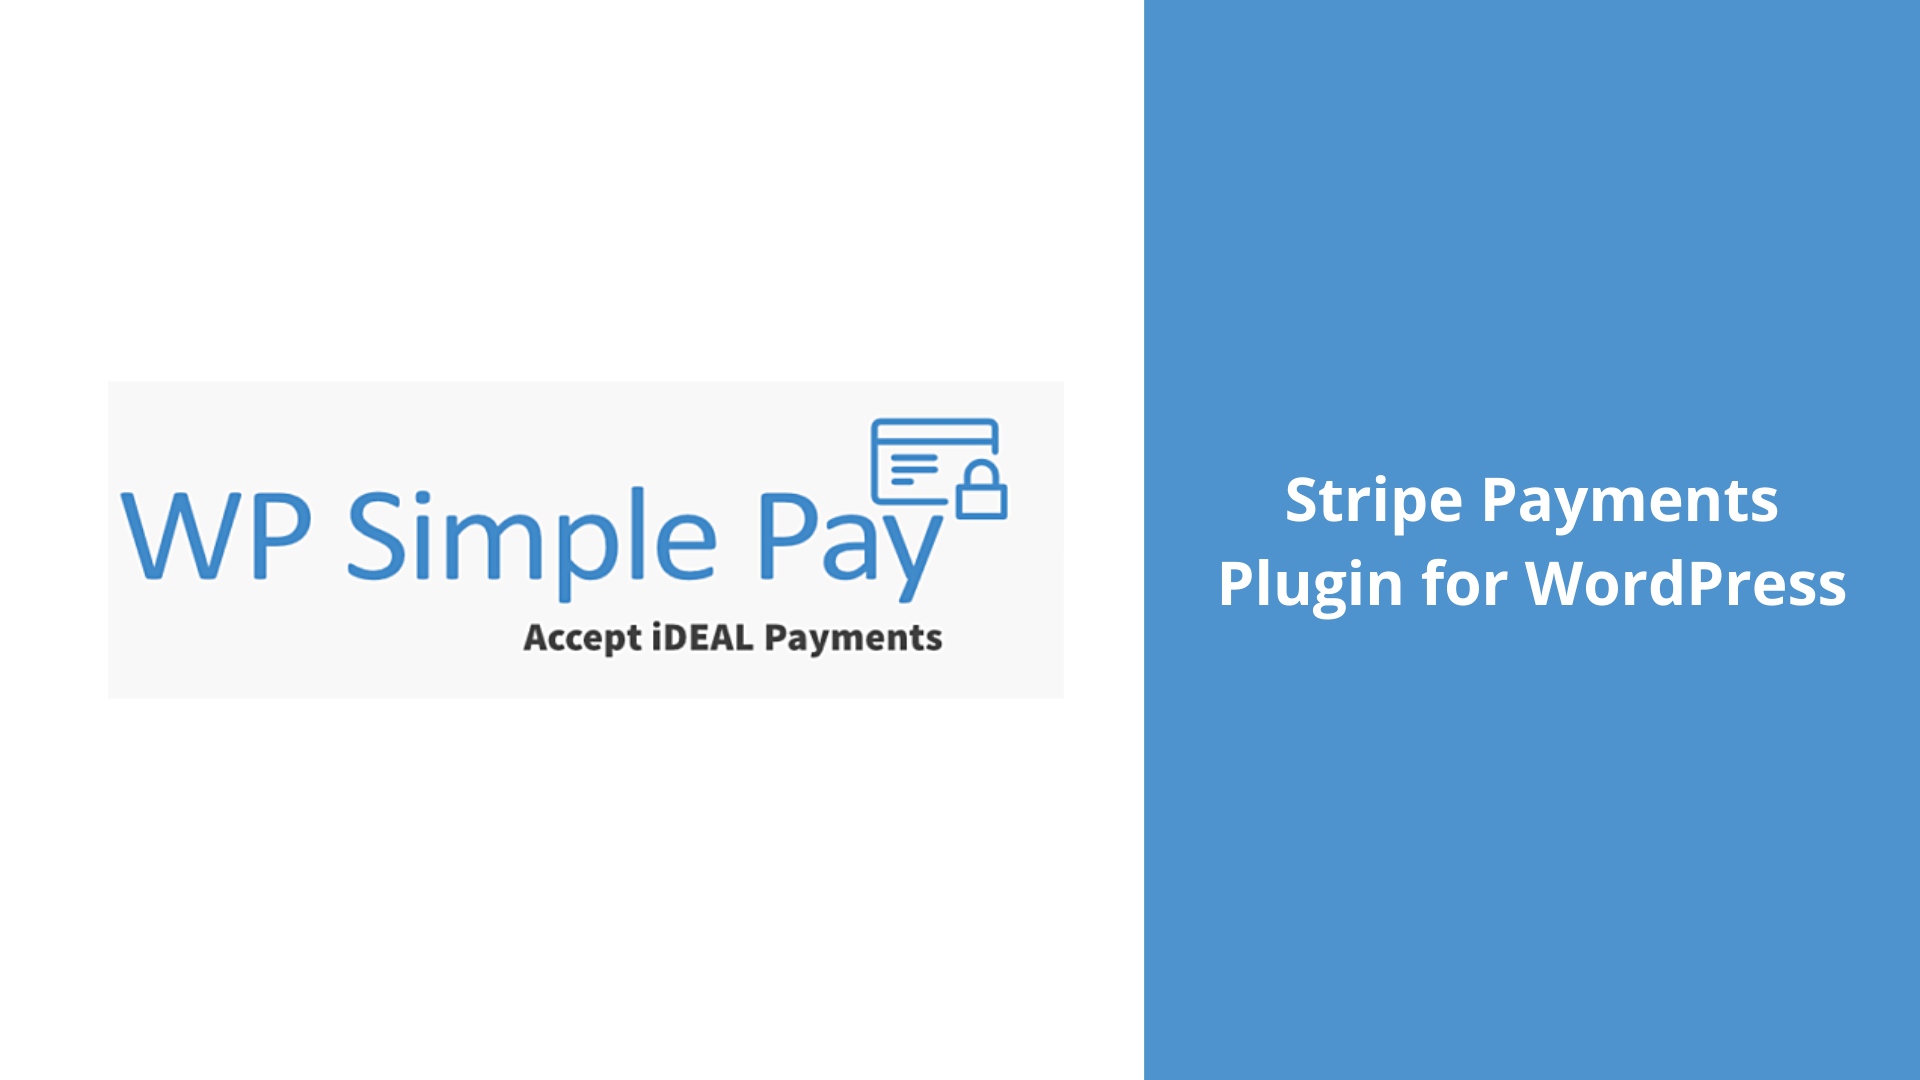 What is WP Simple Pay?